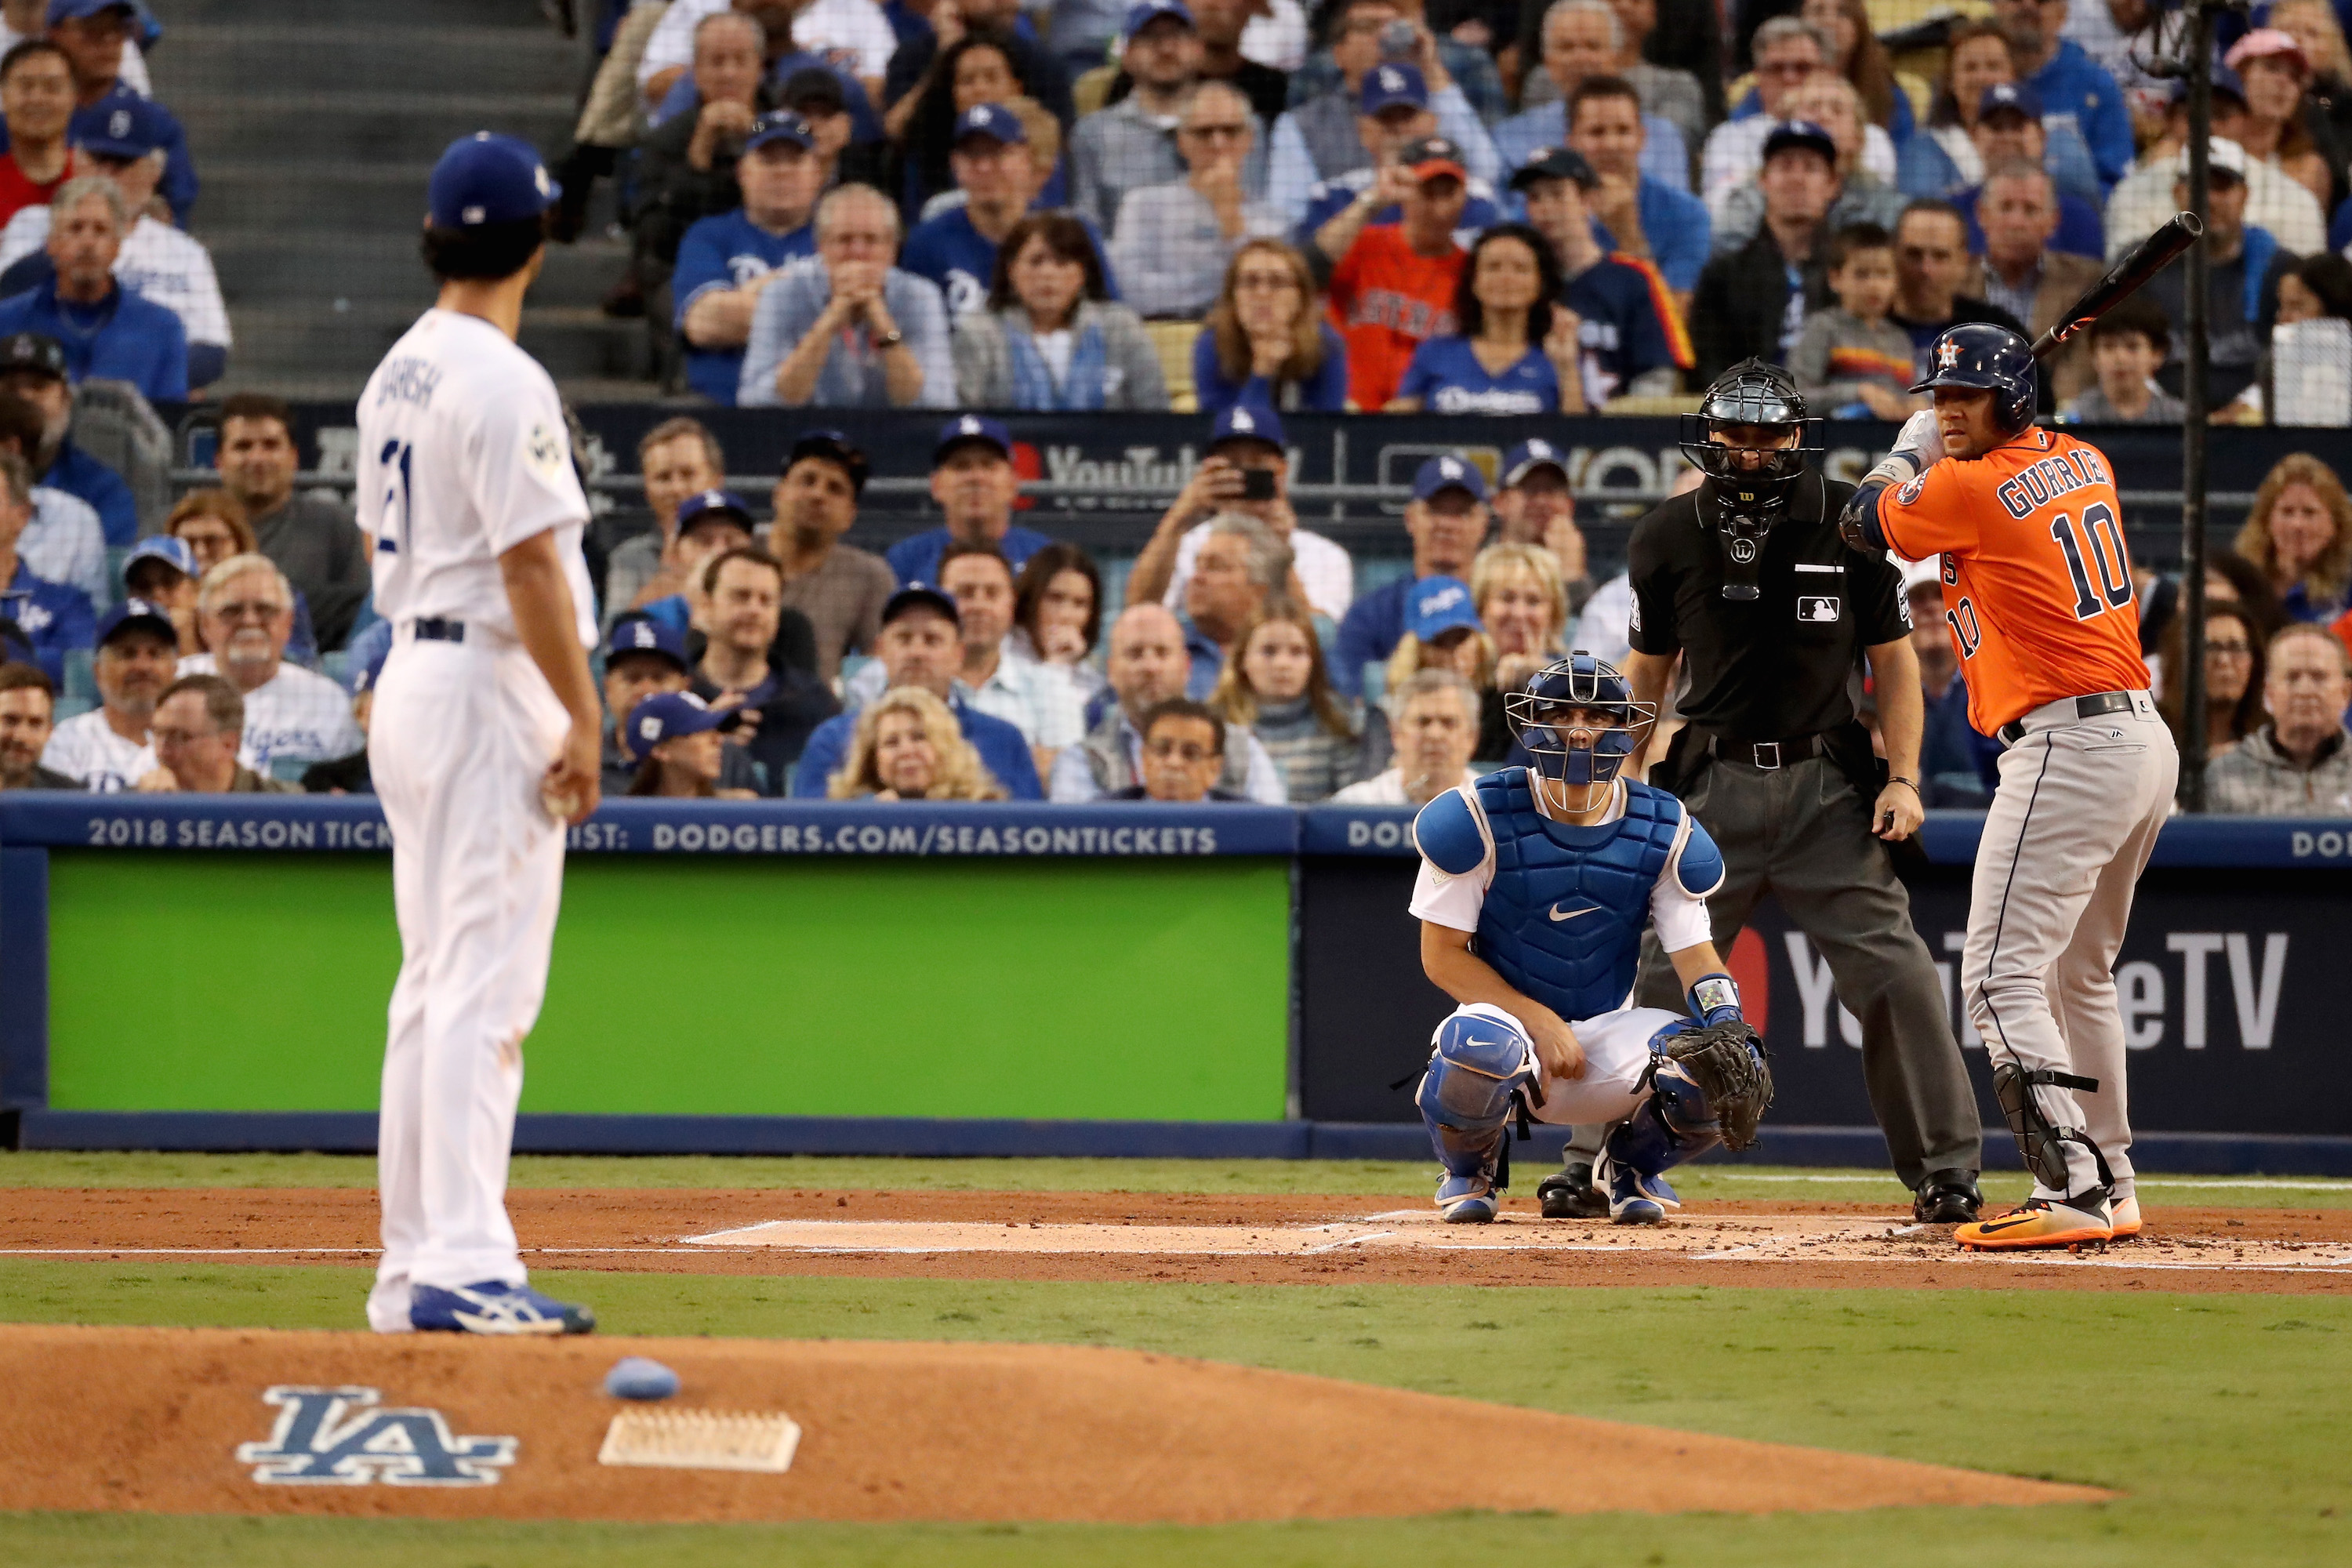 After Racist Gesture, Yuri Gurriel Apologetically Tips Hat to Dodgers Pitcher Yu Darvish